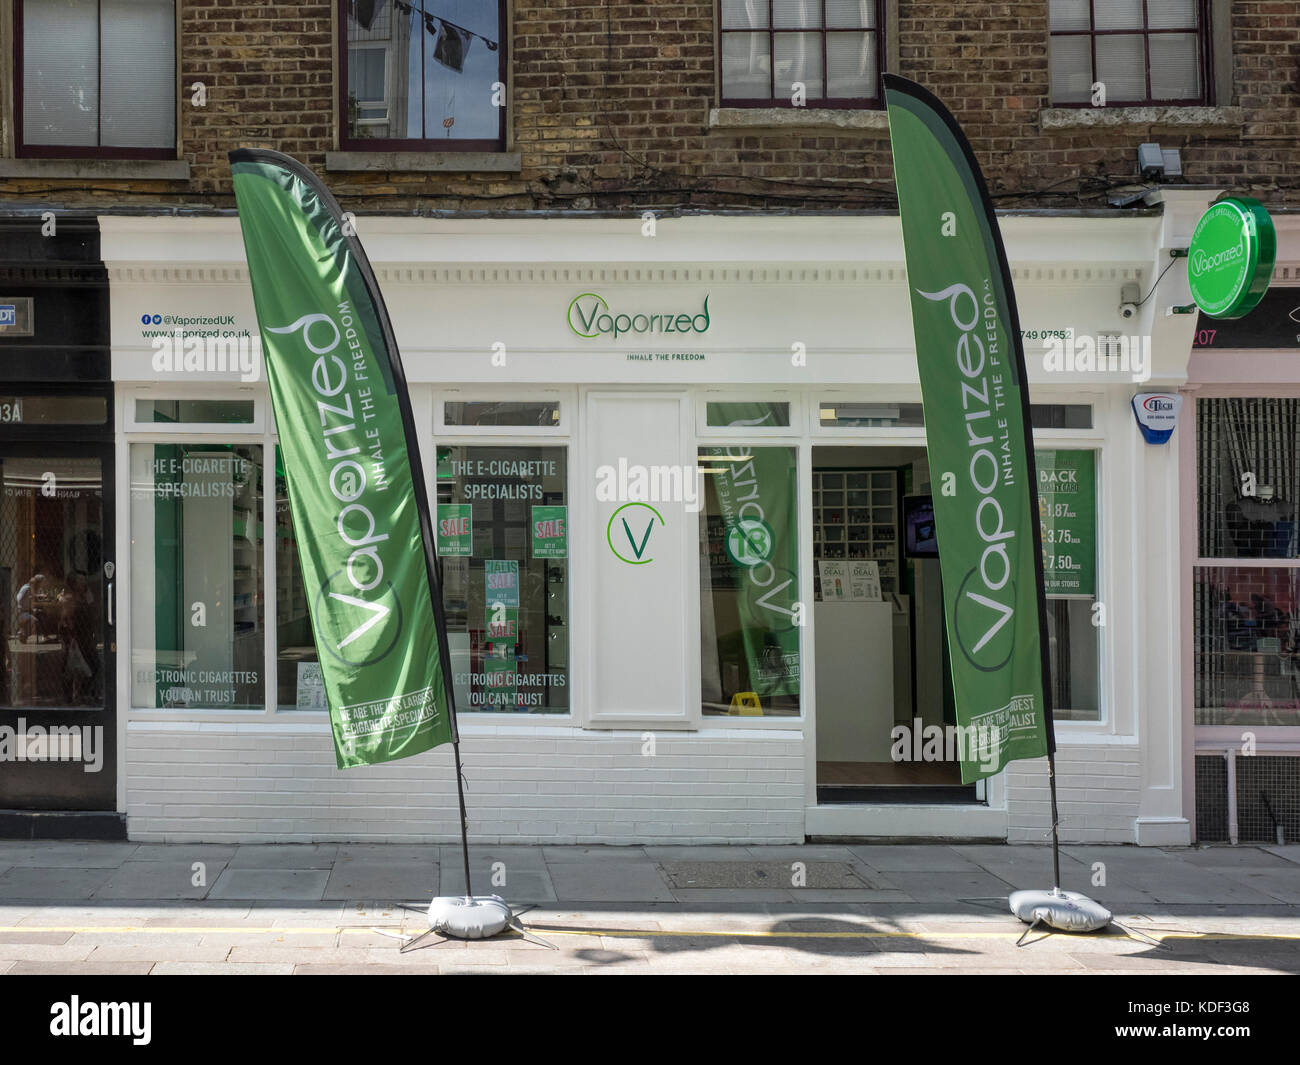 WHITECROSS STREET, LONDON:  Vaporized Store - on of a chain selling electronic cigarettes and e-liquids - Stock Image